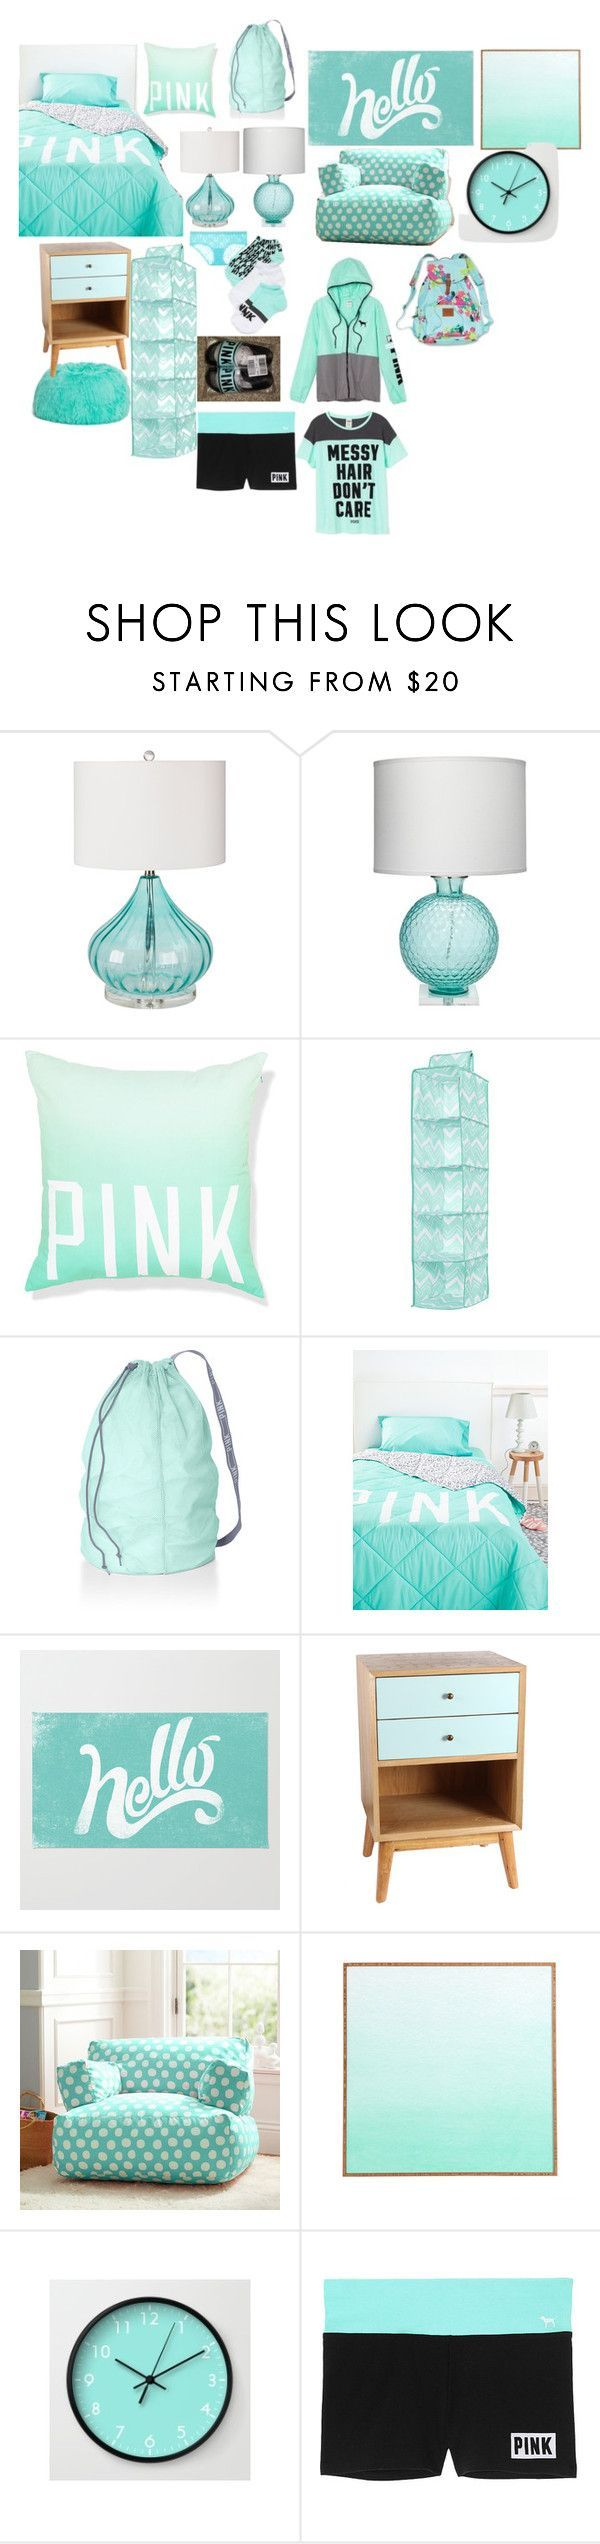 """Teen bedroom"" by turnerjazmyne on Polyvore featuring interior, interiors, interior design, home, home decor, interior decorating, Surya, Jamie Young, Victoria's Secret PINK and Antique Revival"